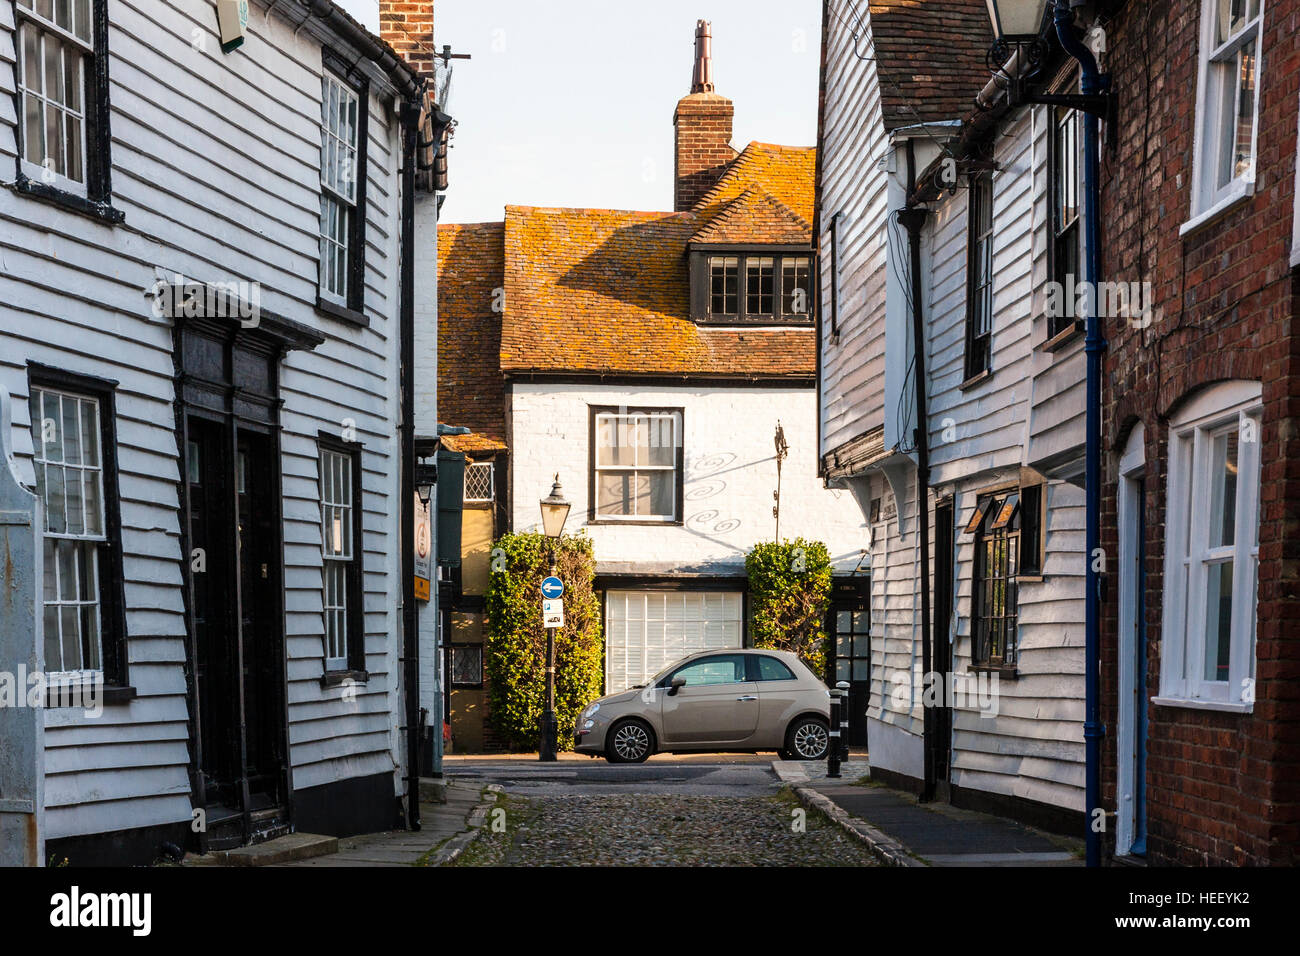 England, Rye. House, parked car outside, seen at end of street with white wooden weatherboarded 18th century houses - Stock Image